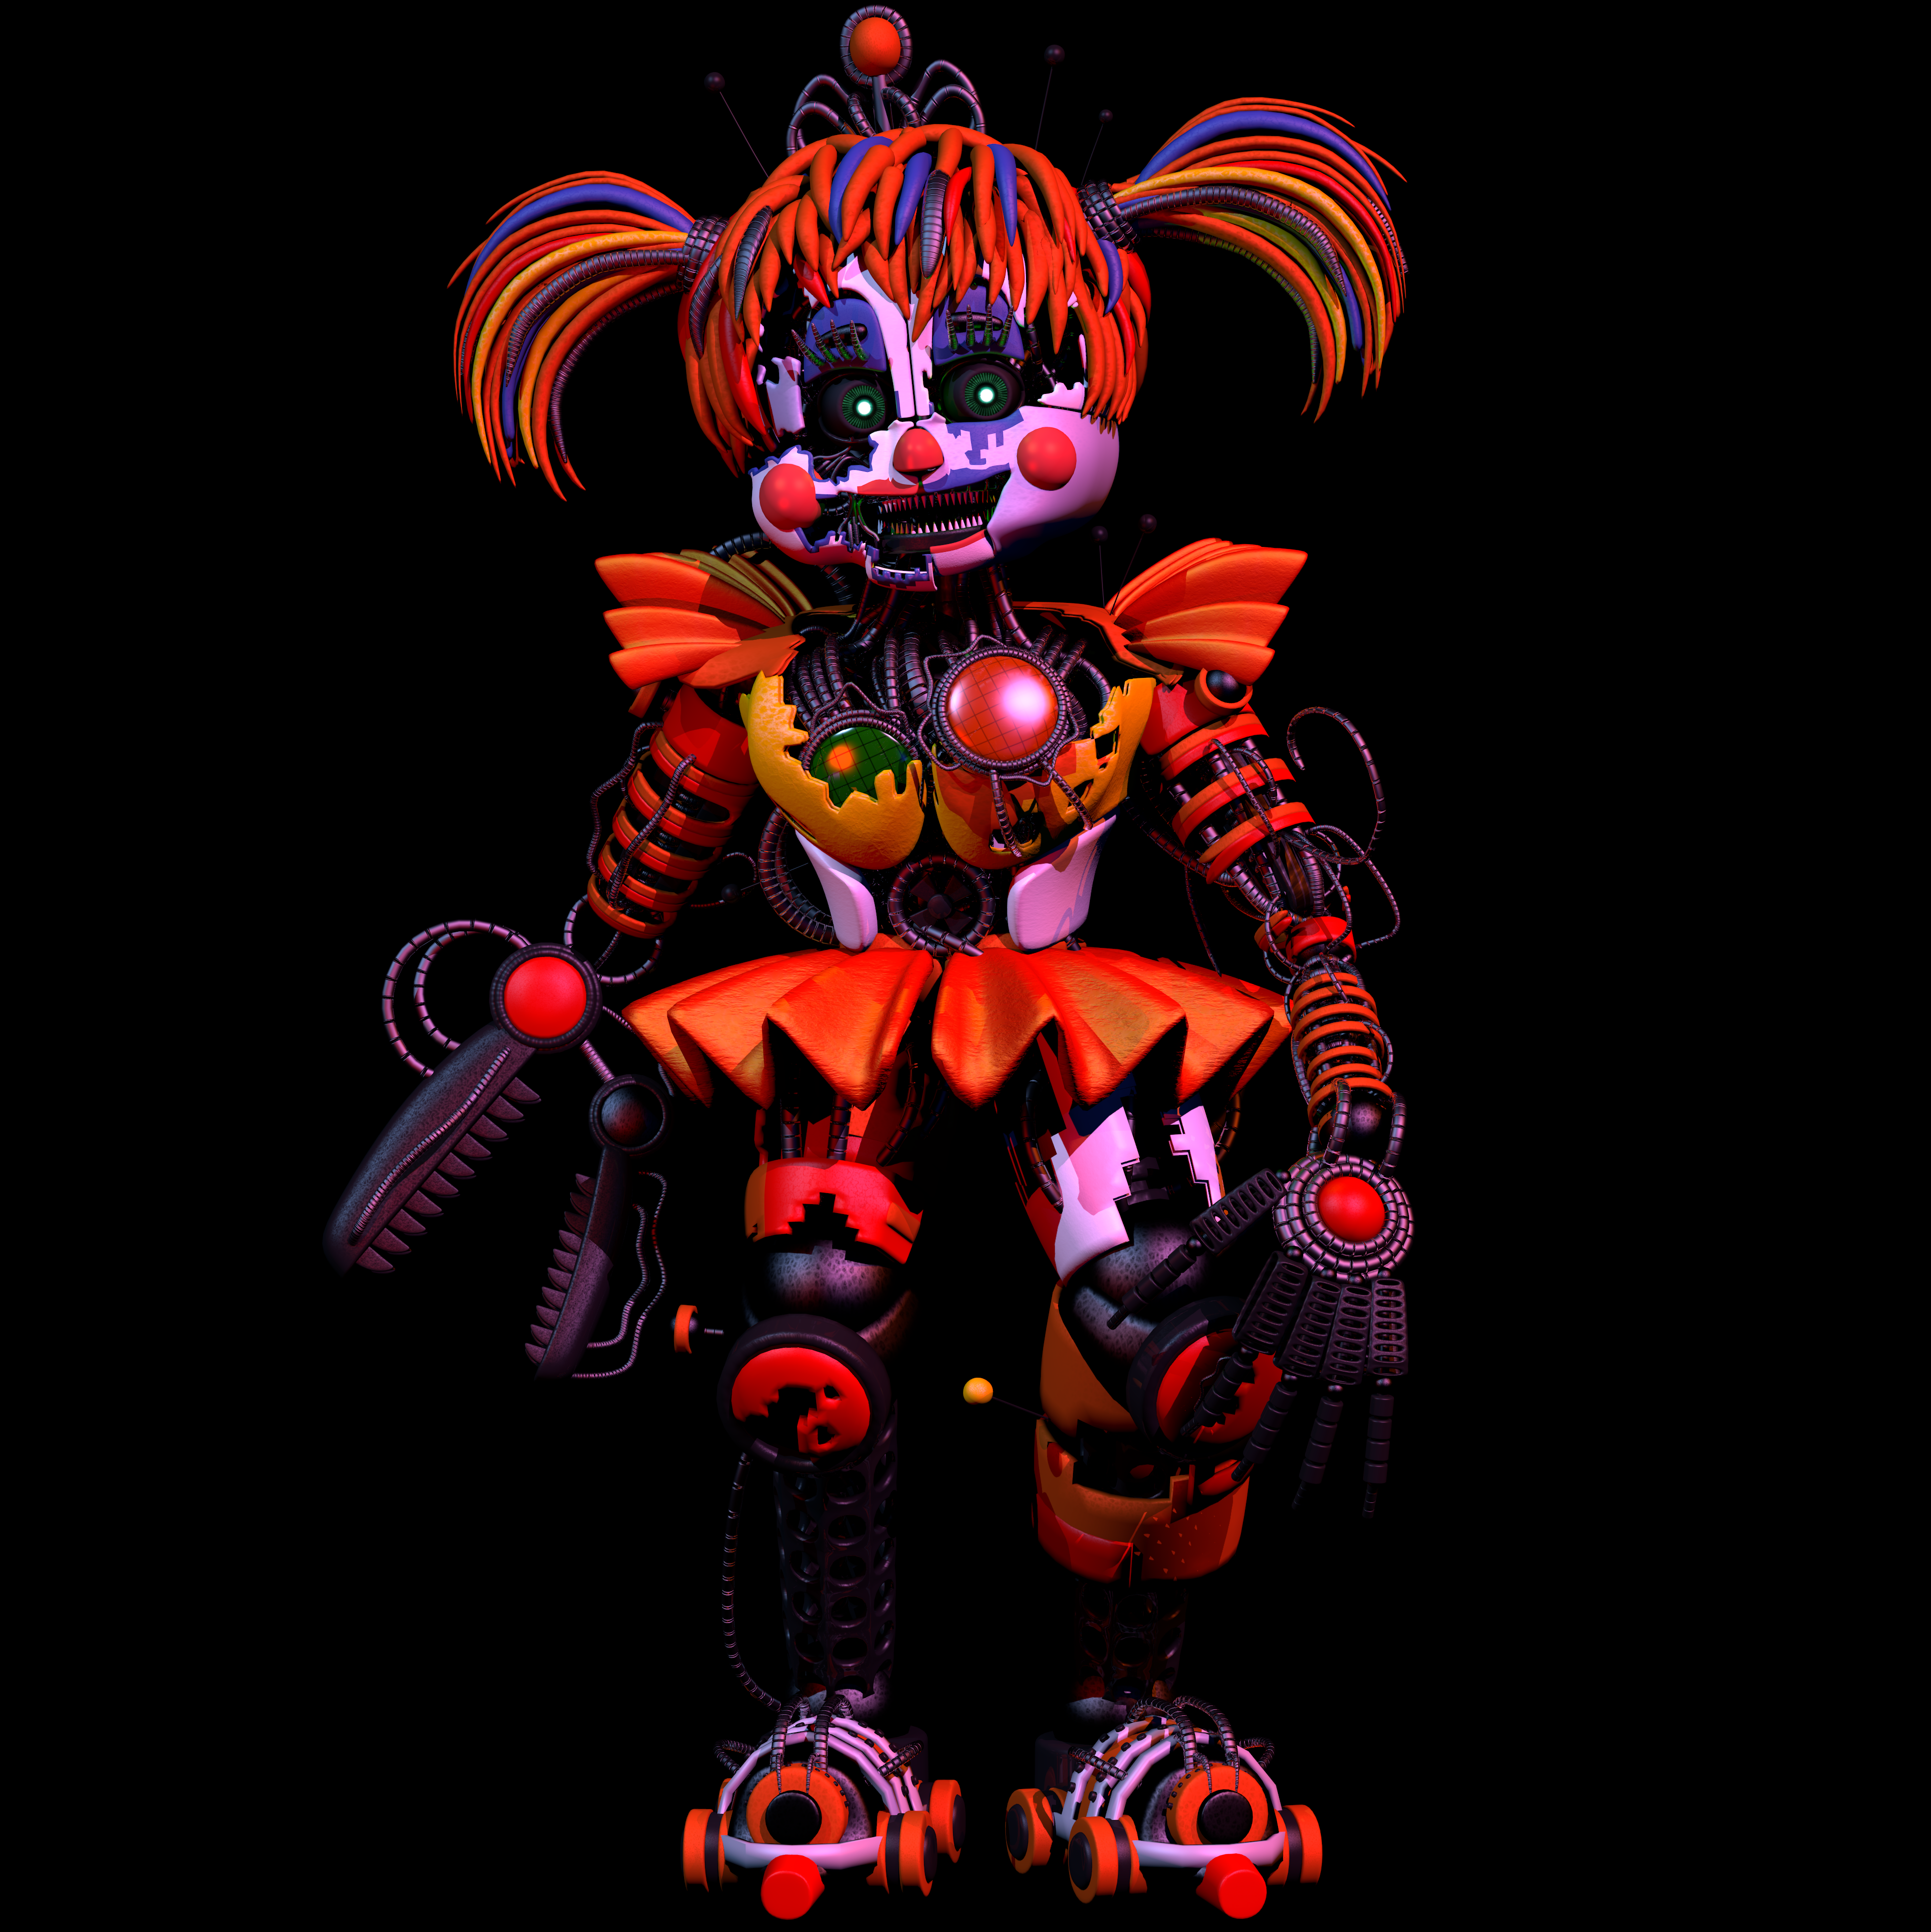 Scrap Baby V1 By Timimouse15 On DeviantArt